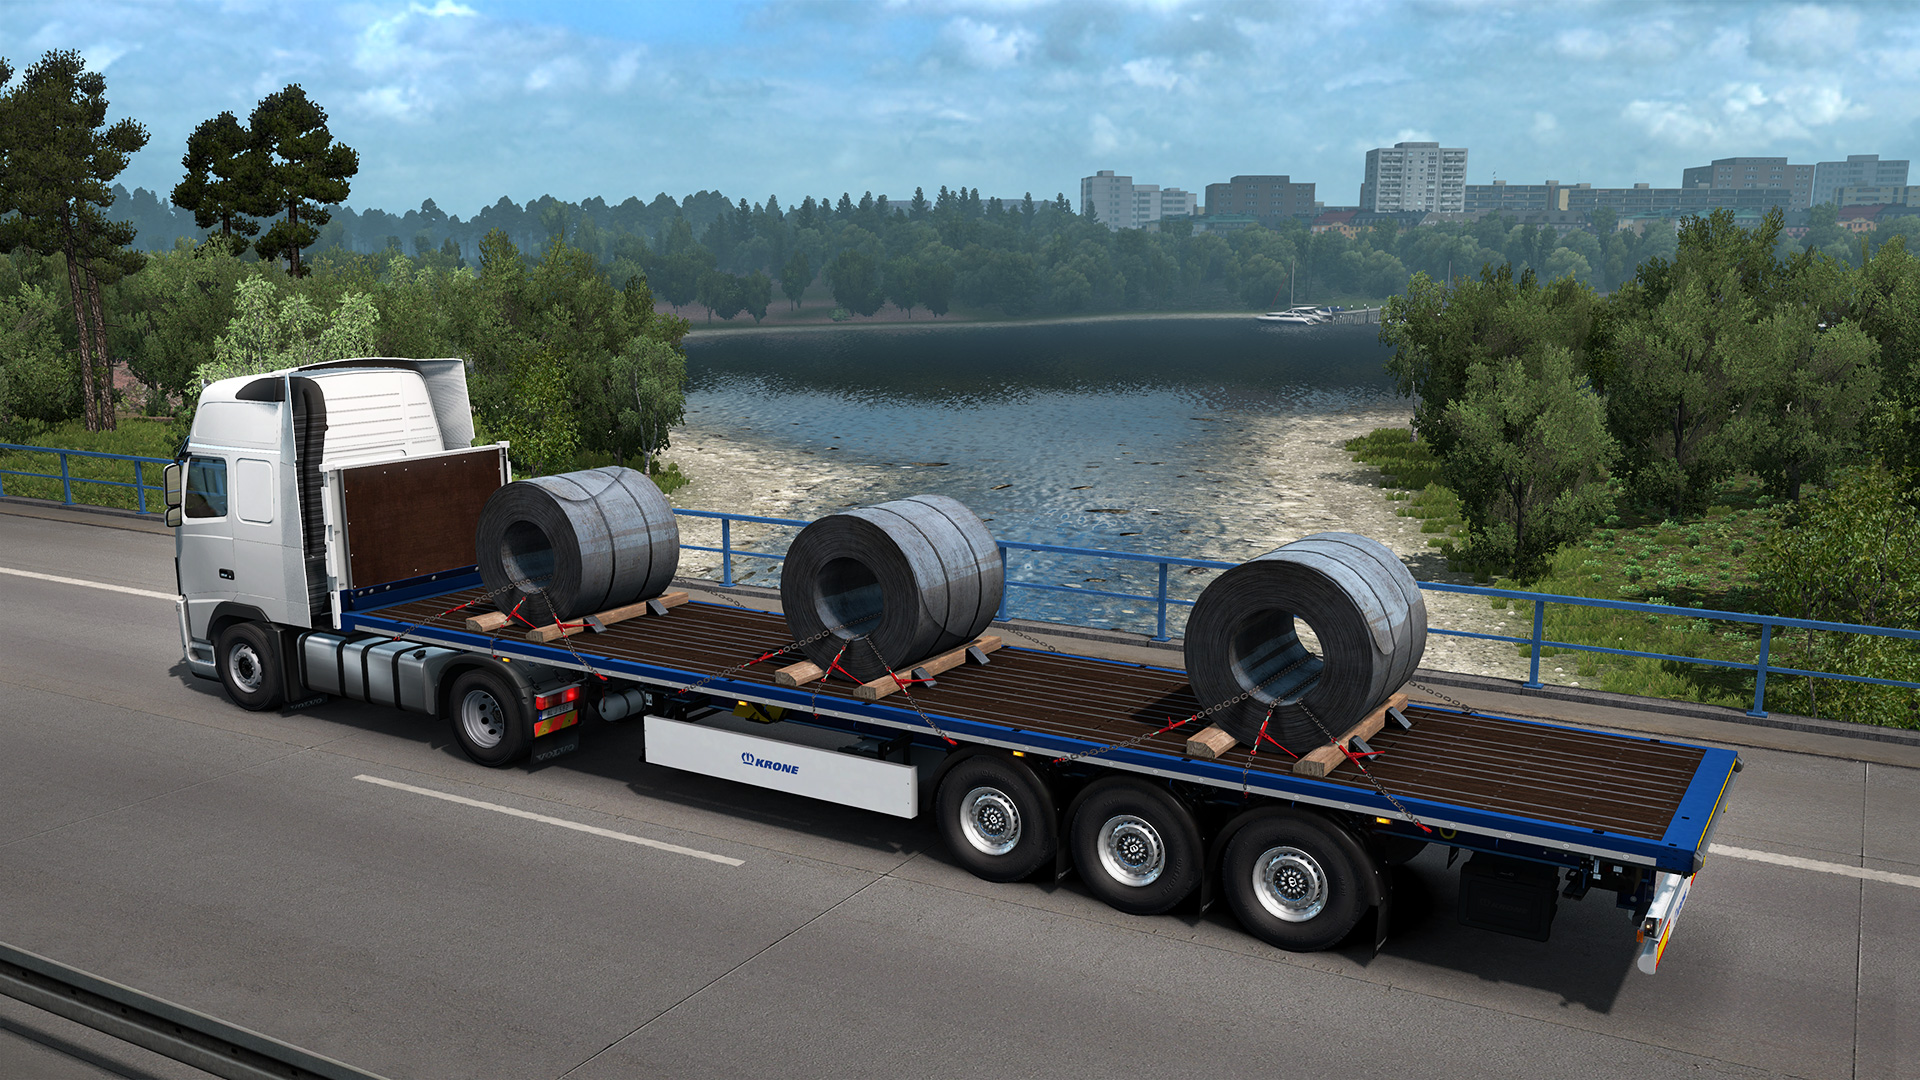 Euro truck simulator 2 windows 10 32 bit